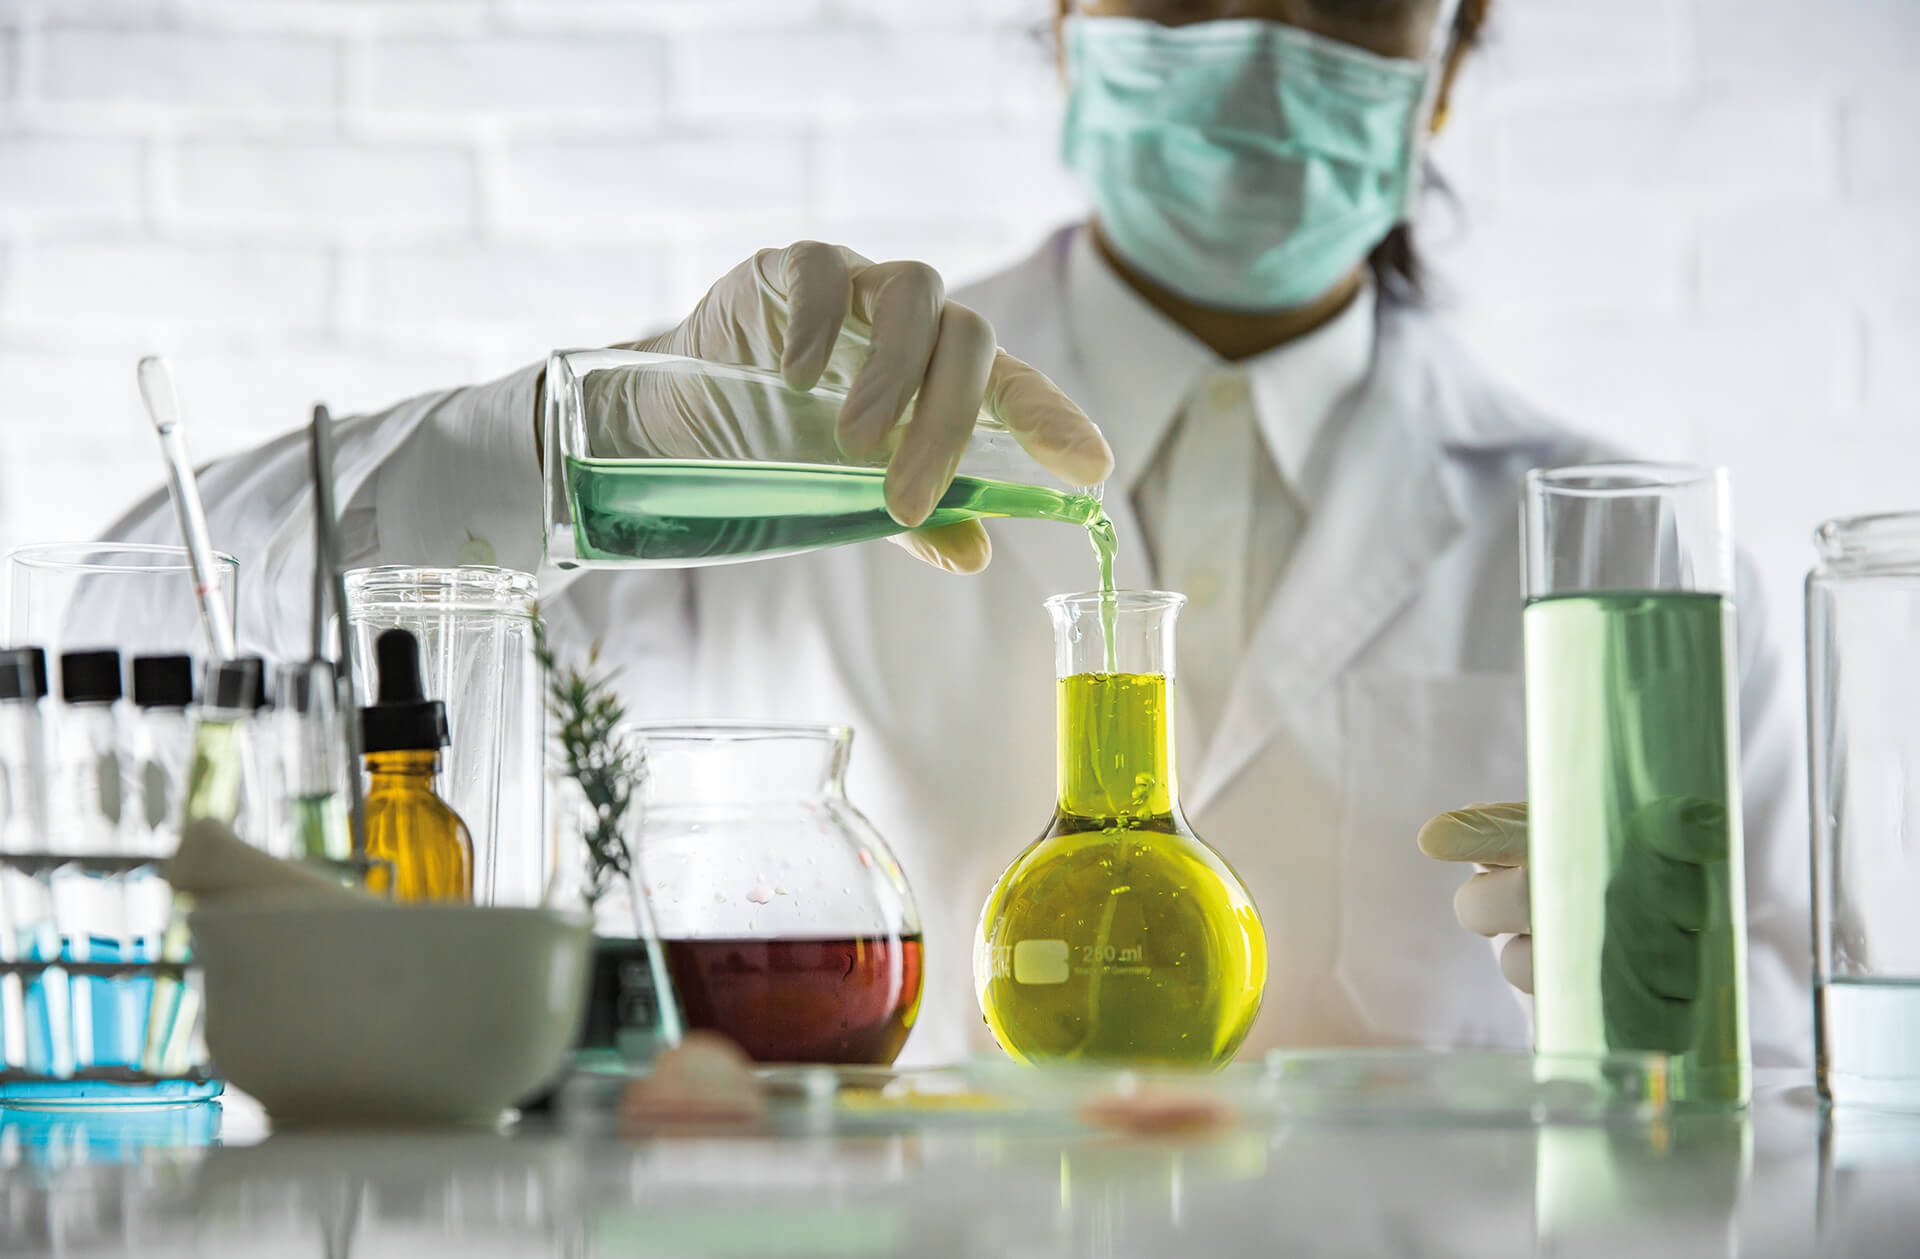 flavors, flavour suppliers in UAE, flavor manufacturer GCC, Flavoring products, flavor ingredients, recipe support, seasonings, FSL applicable lab